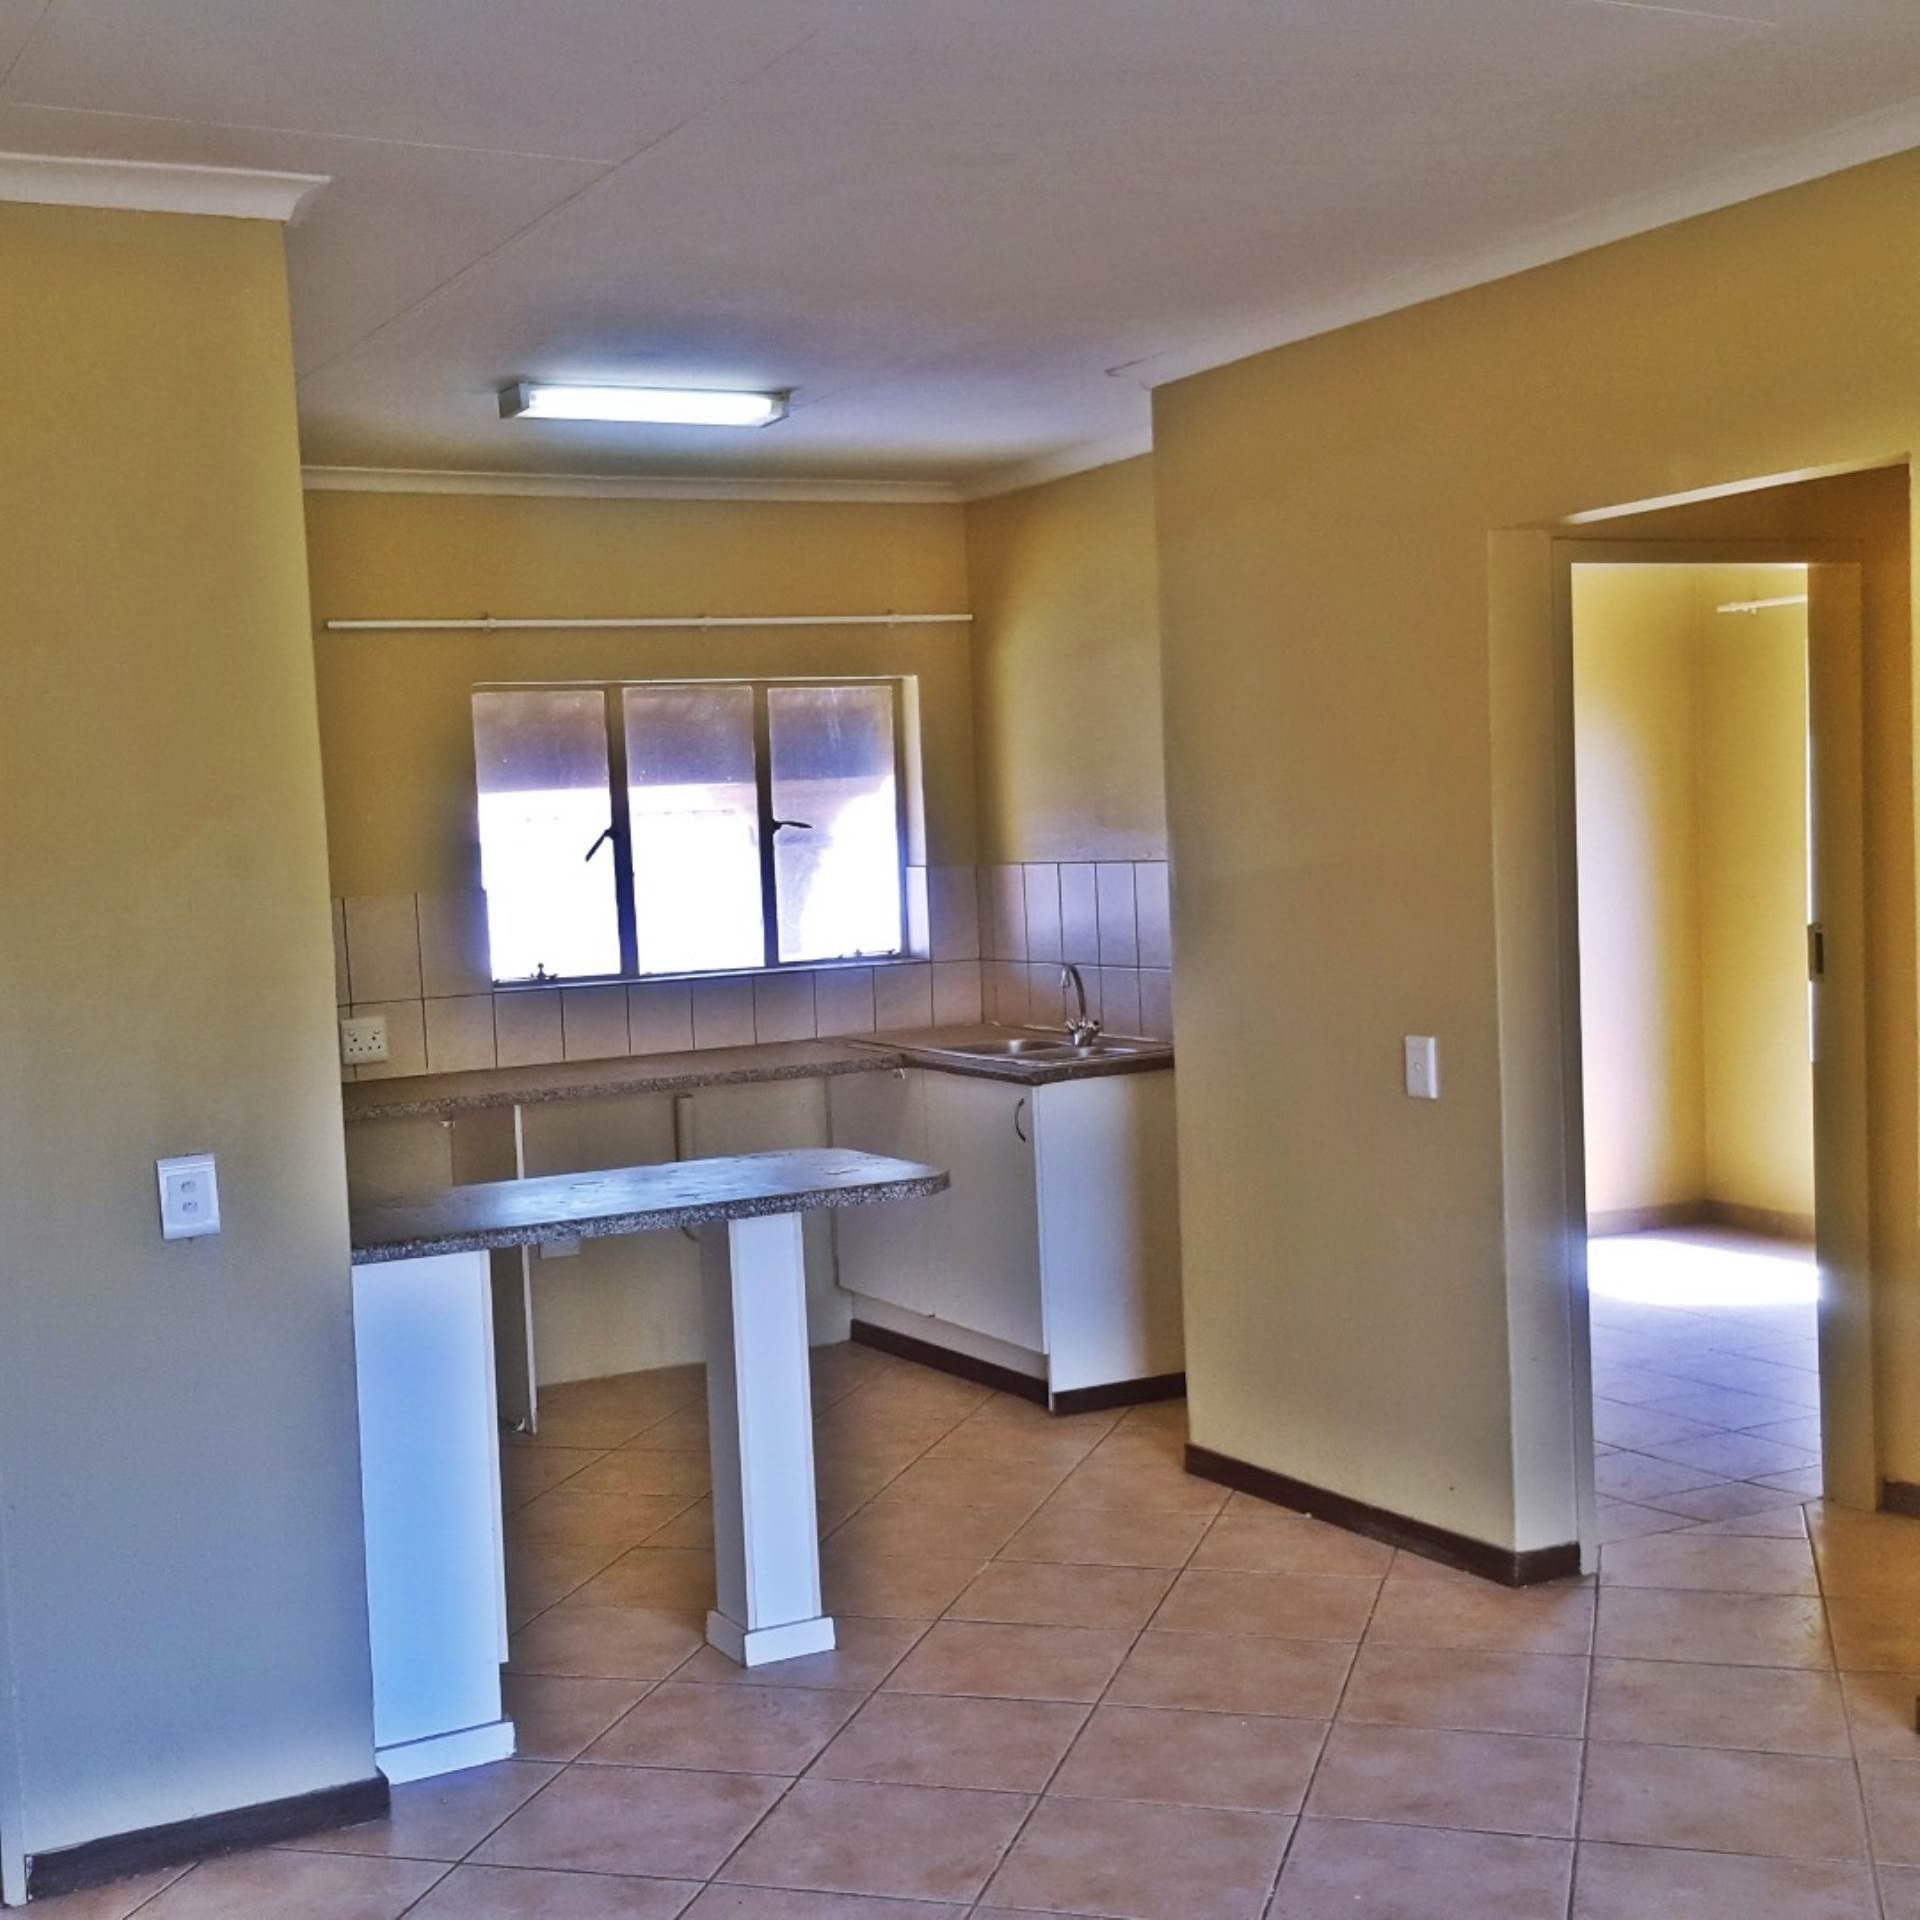 Rental Townhouses: Townhouse Rental Monthly In WITFIELD, BOKSBURG